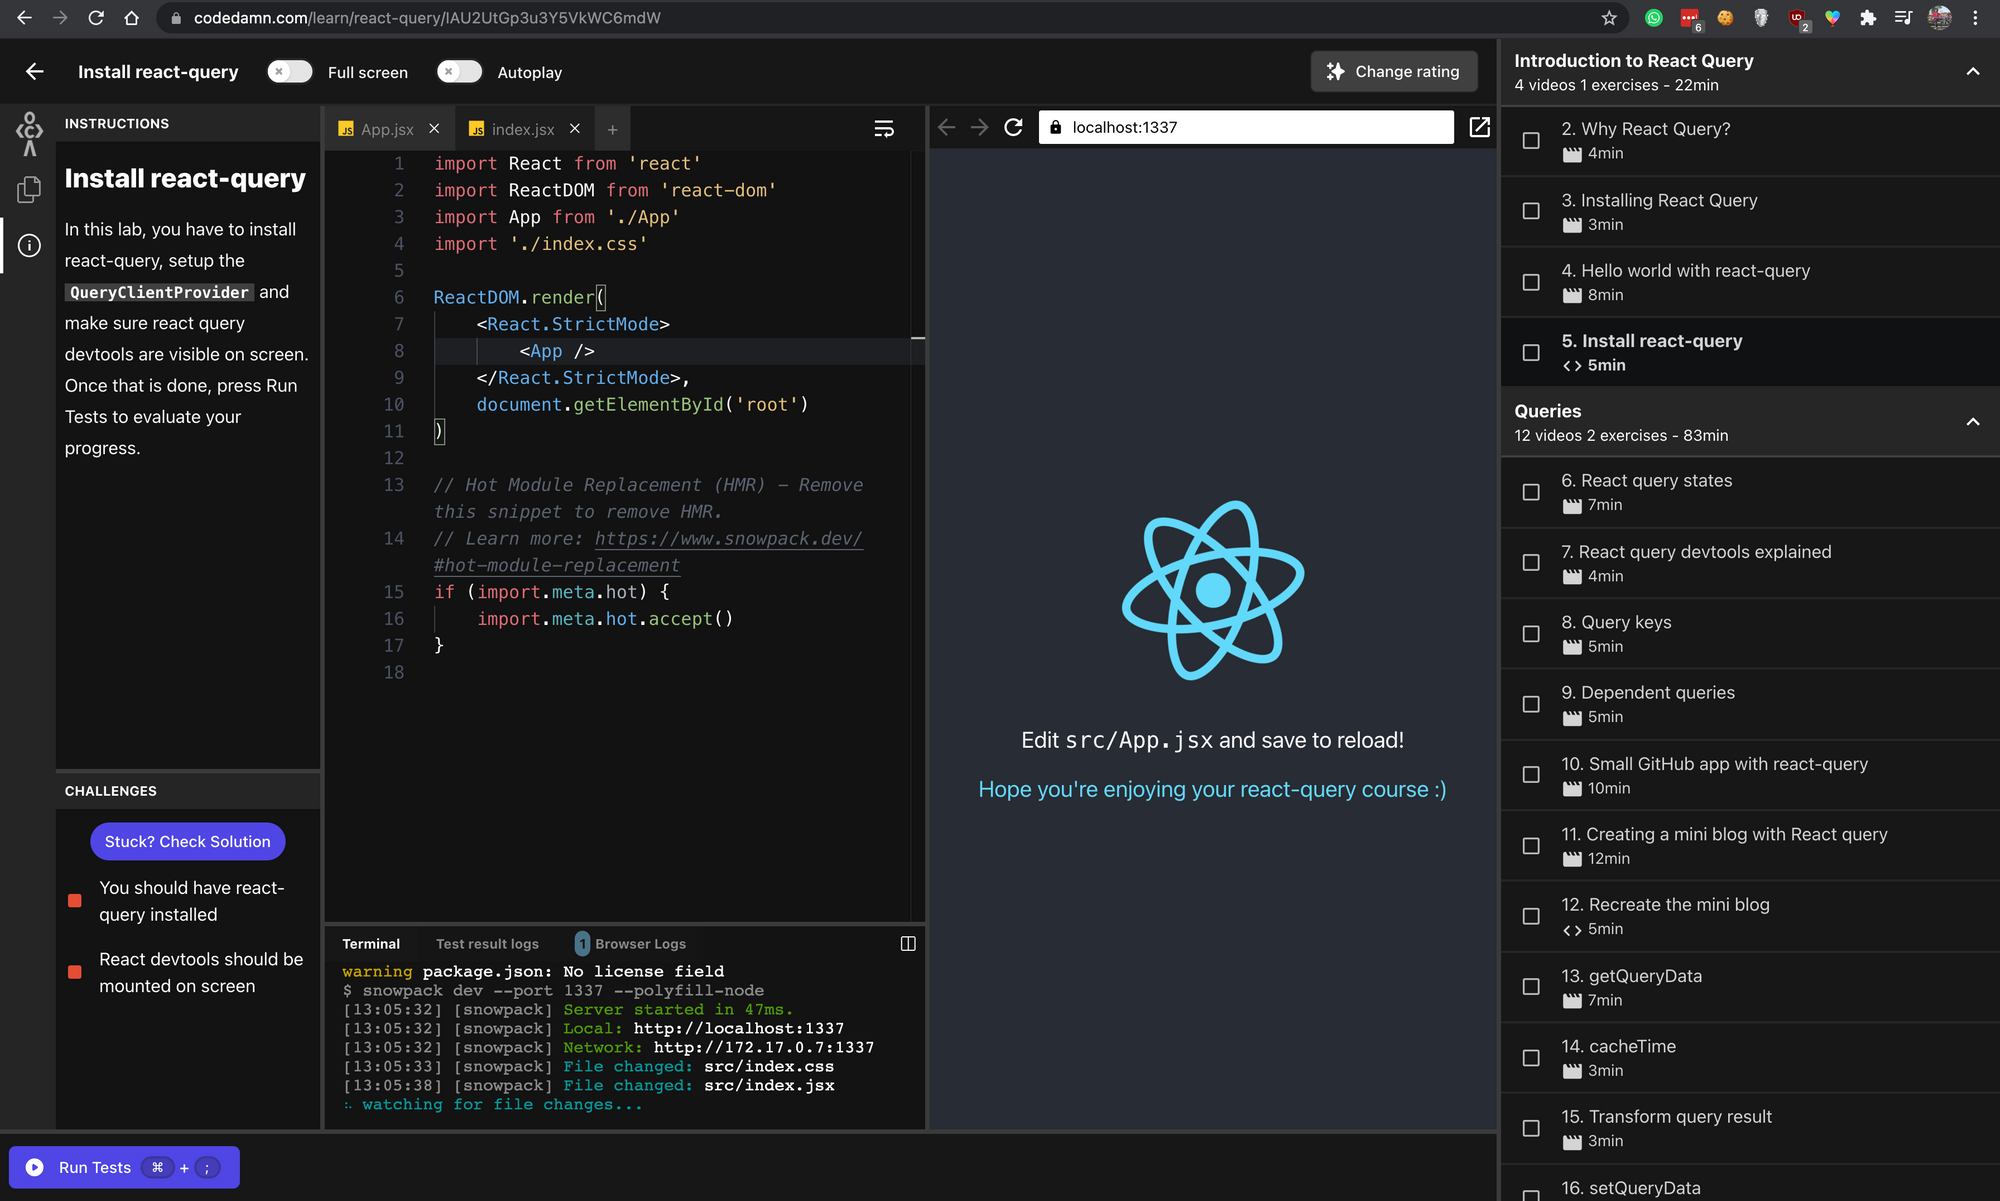 Interactive lab inside react-query course